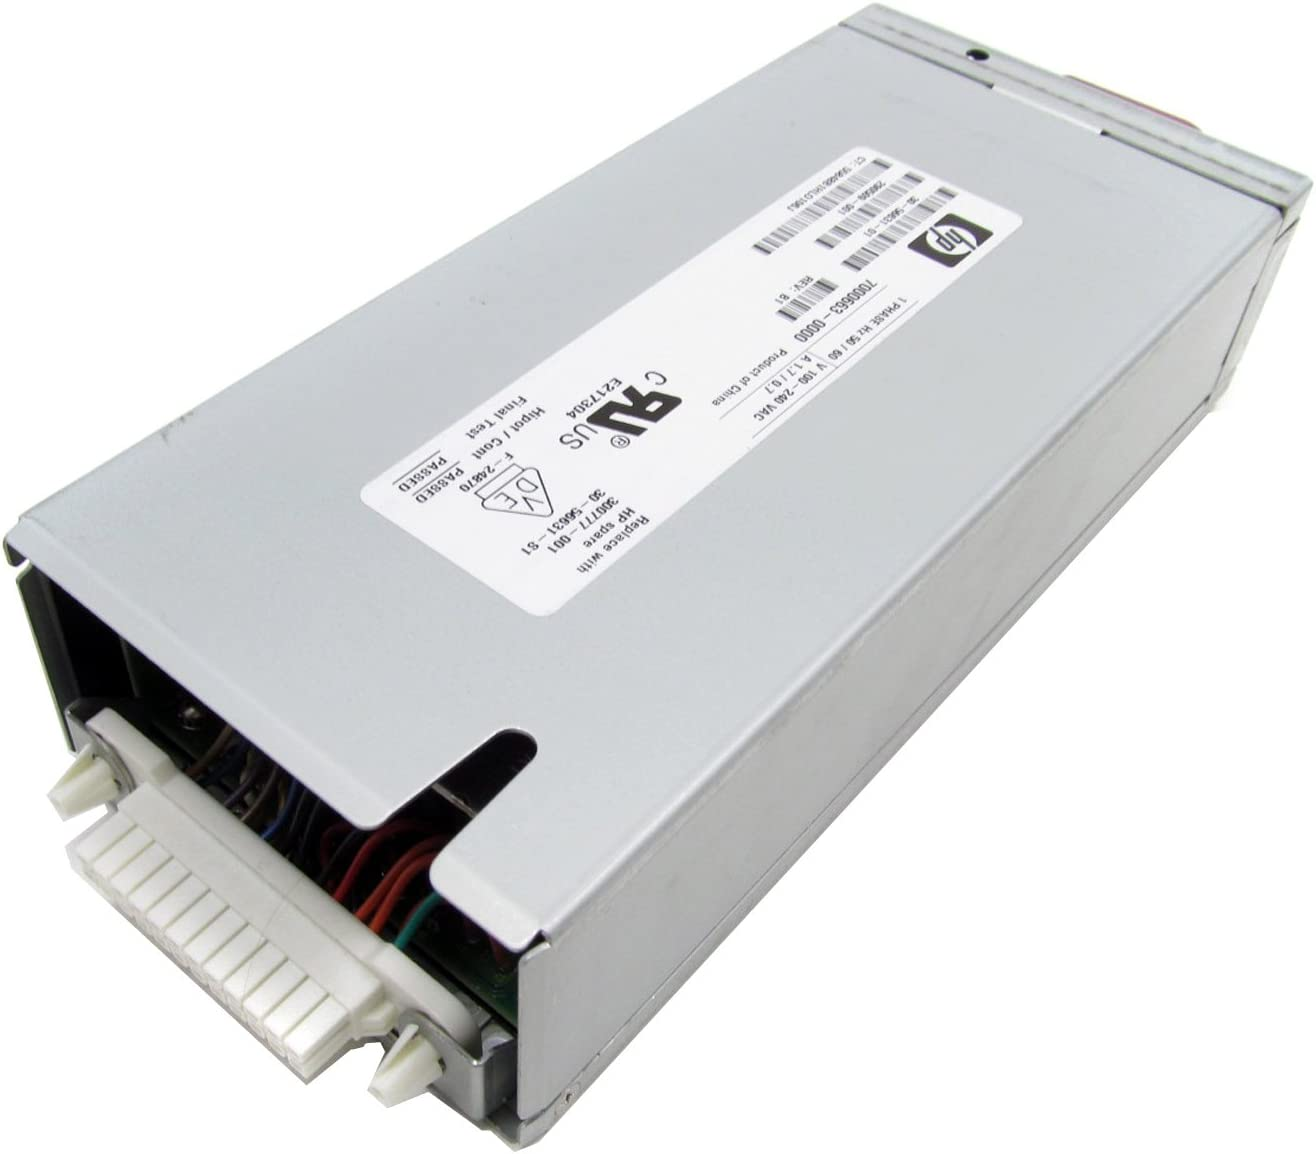 HP 30-56631-S1 103W Hot-Plug Power Supply for HSV100